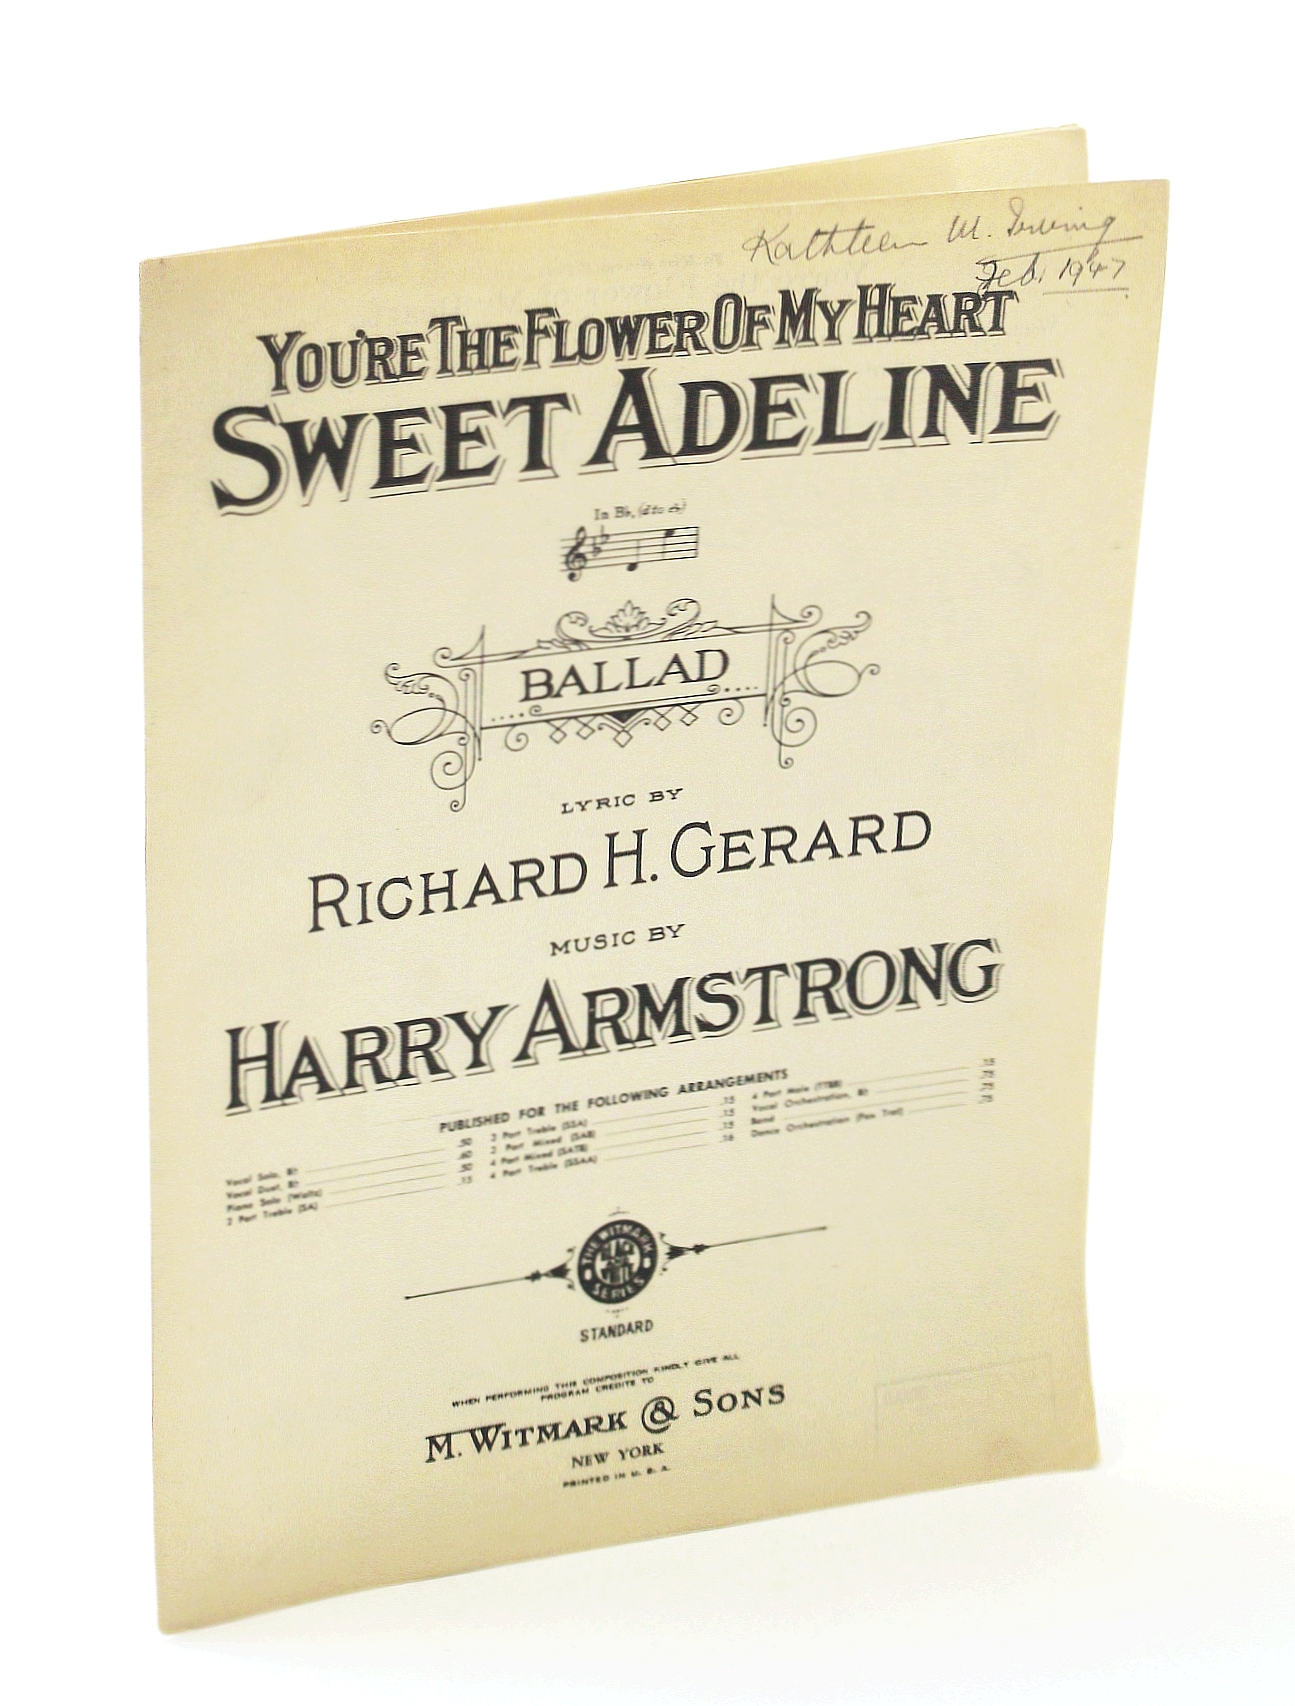 "Image for 6003 YOU'RE THE FLOWER OF MY HEART "" SWEET ADELINE "" (SOLO in Bb ) BALLAD * LYRIC BY RICHARD H. GERARD * MUSIC BY HARRY ARMSTRONG 1913"